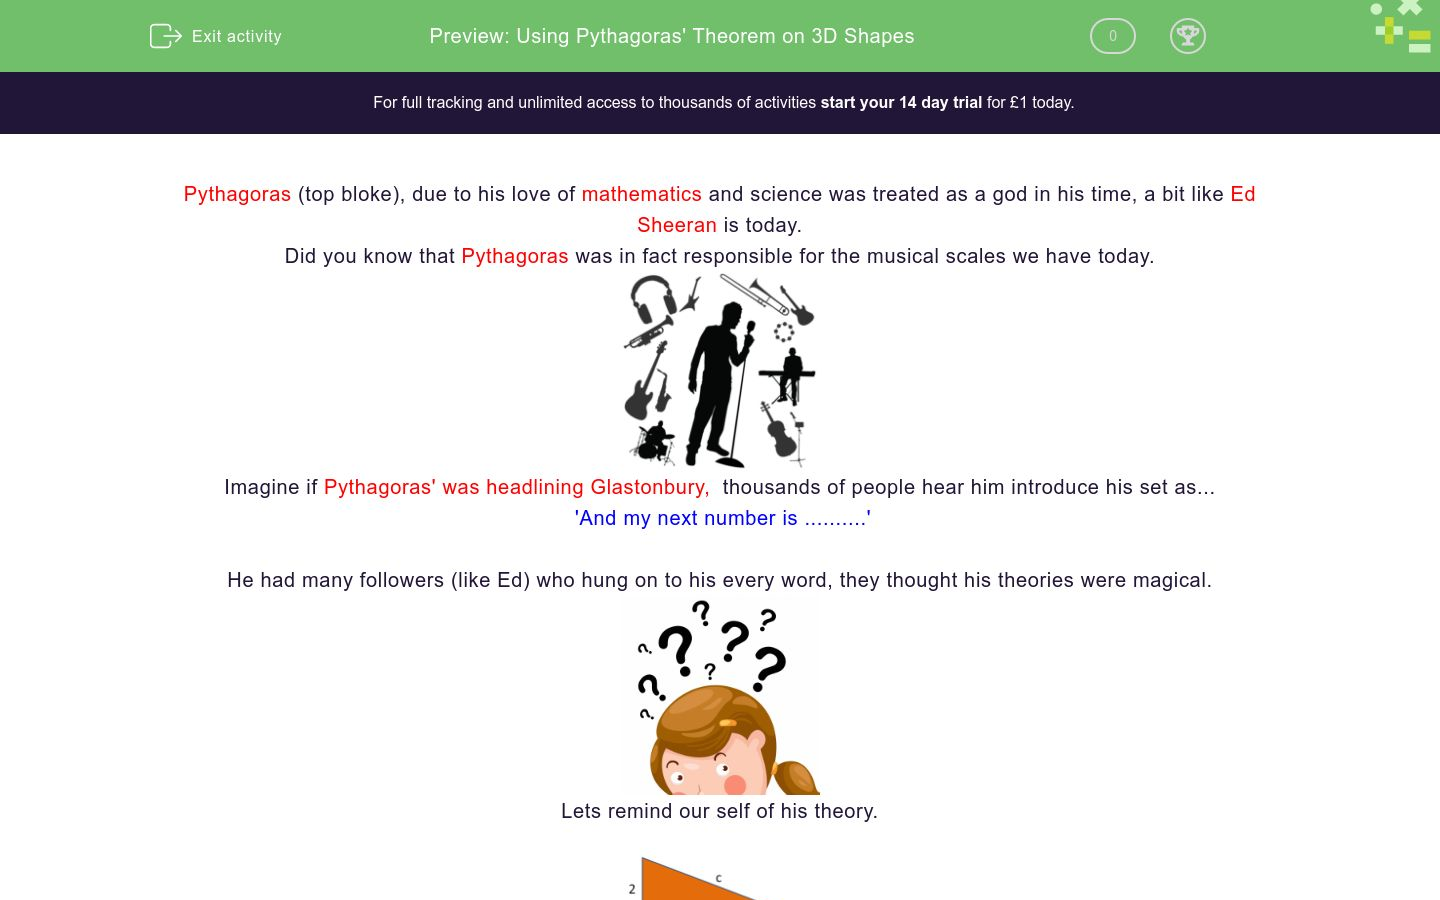 'Using Pythagoras' Theorem on 3D Shapes' worksheet